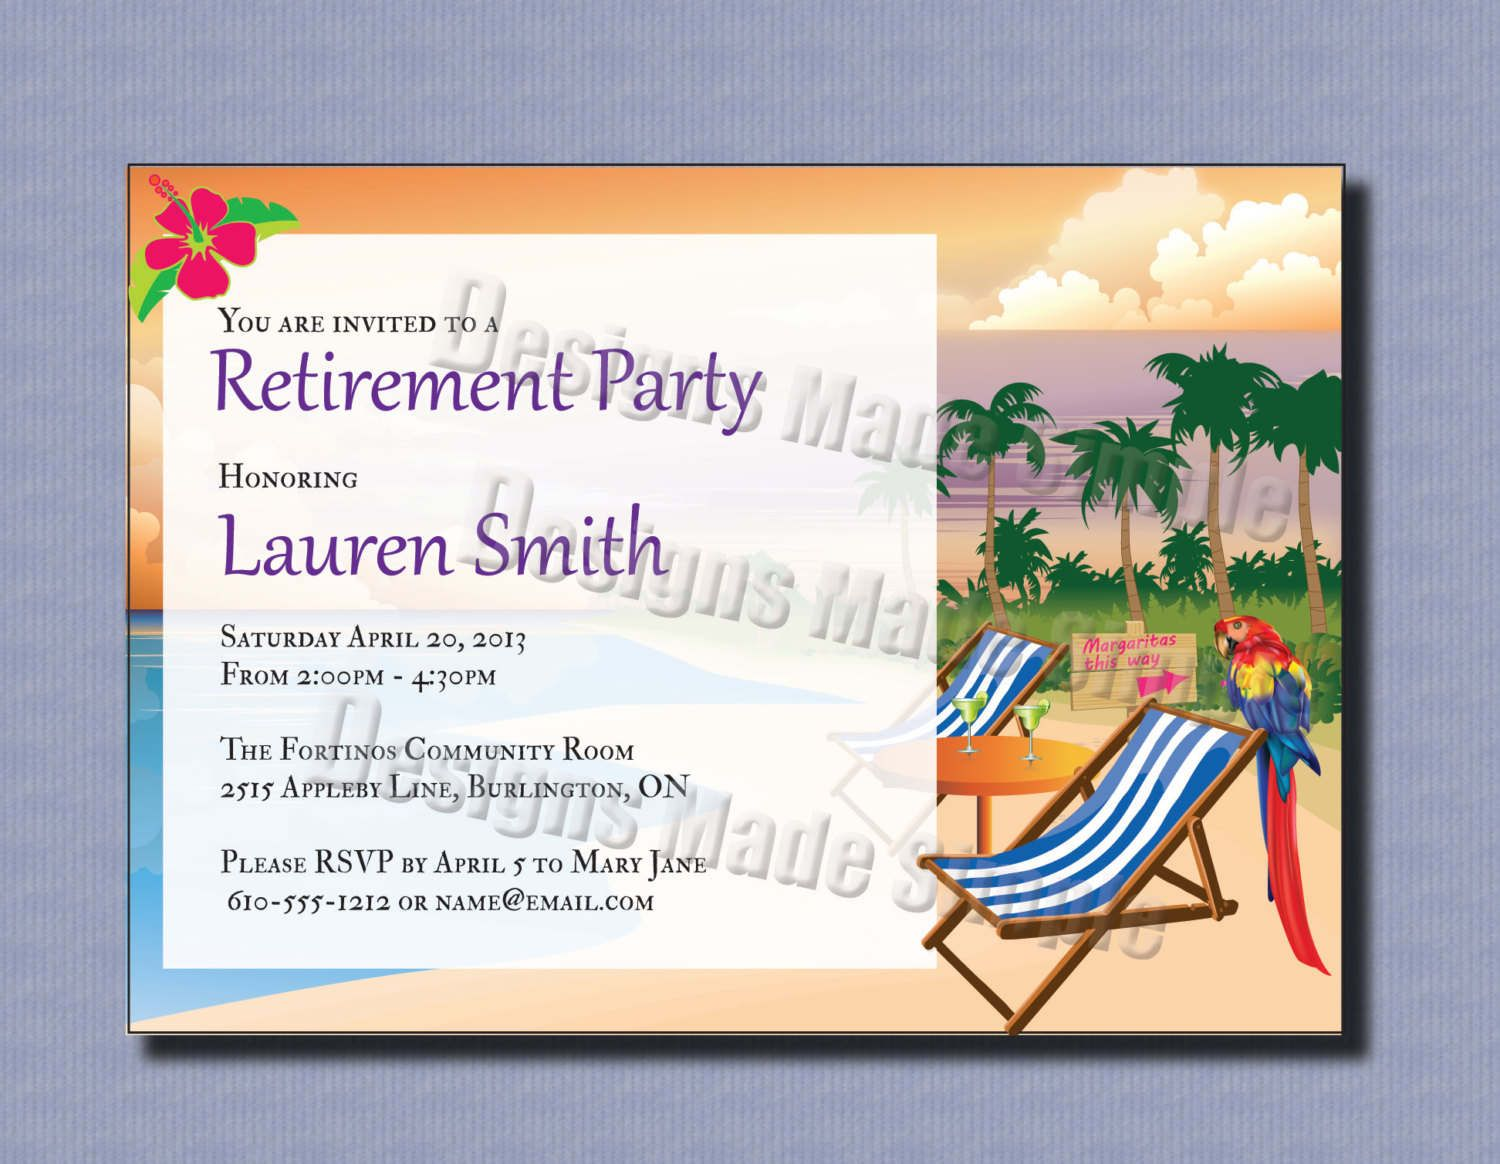 retirement party invitations template 2xizvtxM – Free Party Invitation Template Word